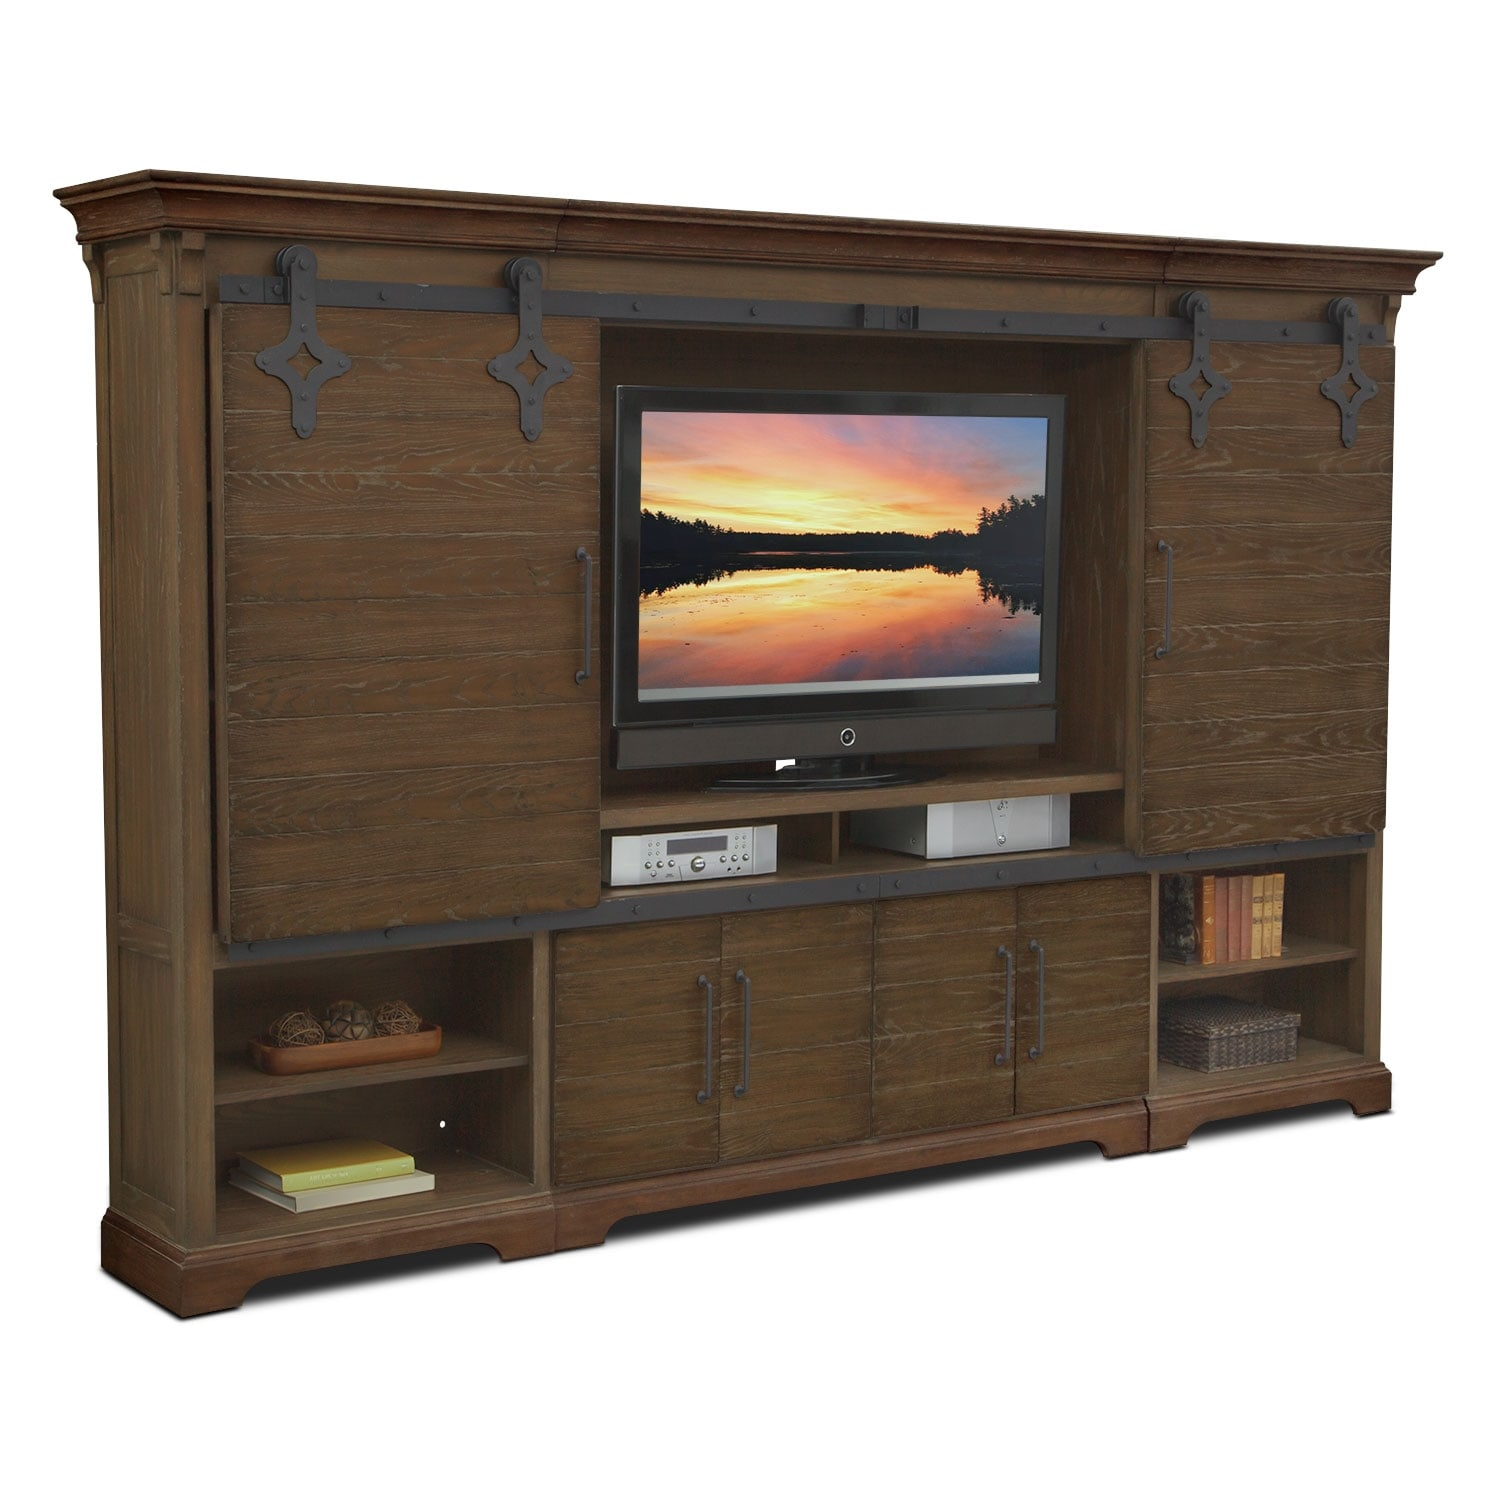 Union city 4 pc entertainment wall unit value city Wall unit furniture